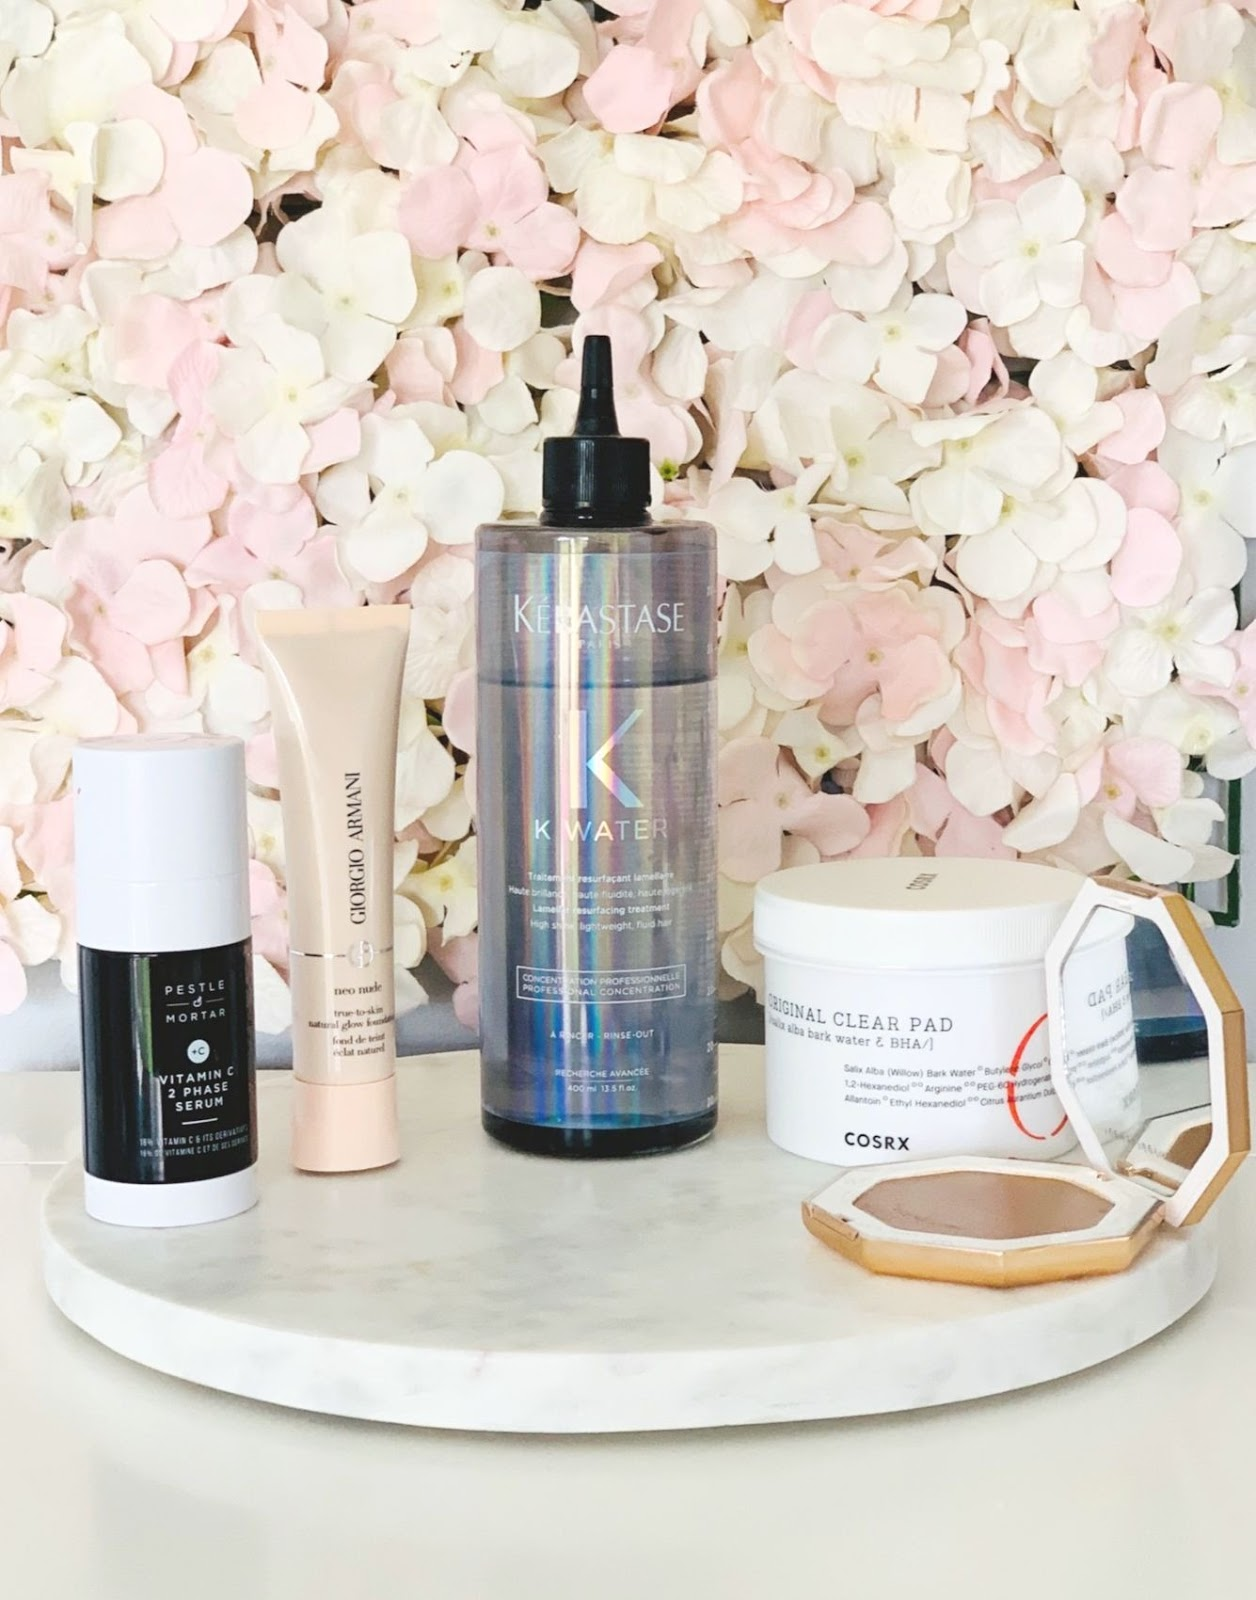 Five products I'm currently loving, Kerastase K-Water, Armani Neo Nude Foundation, COSRX Original One Step Original Clear Pads, Pestle & Mortar Vitamin C 2 Phase Serum, Fenty Beauty Cream Bronzer